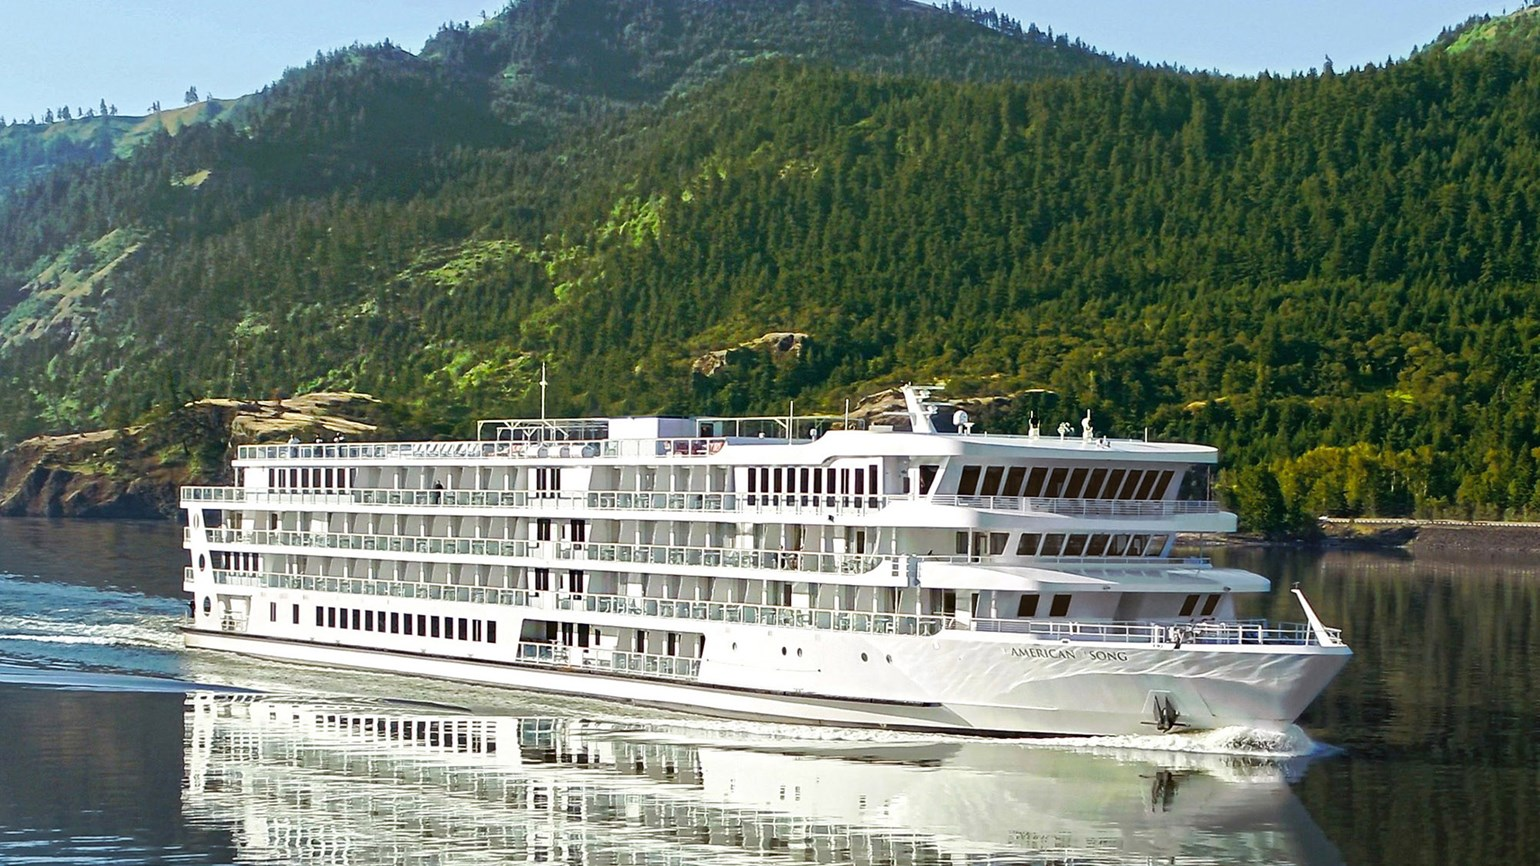 American Cruise Lines restarting operations in June